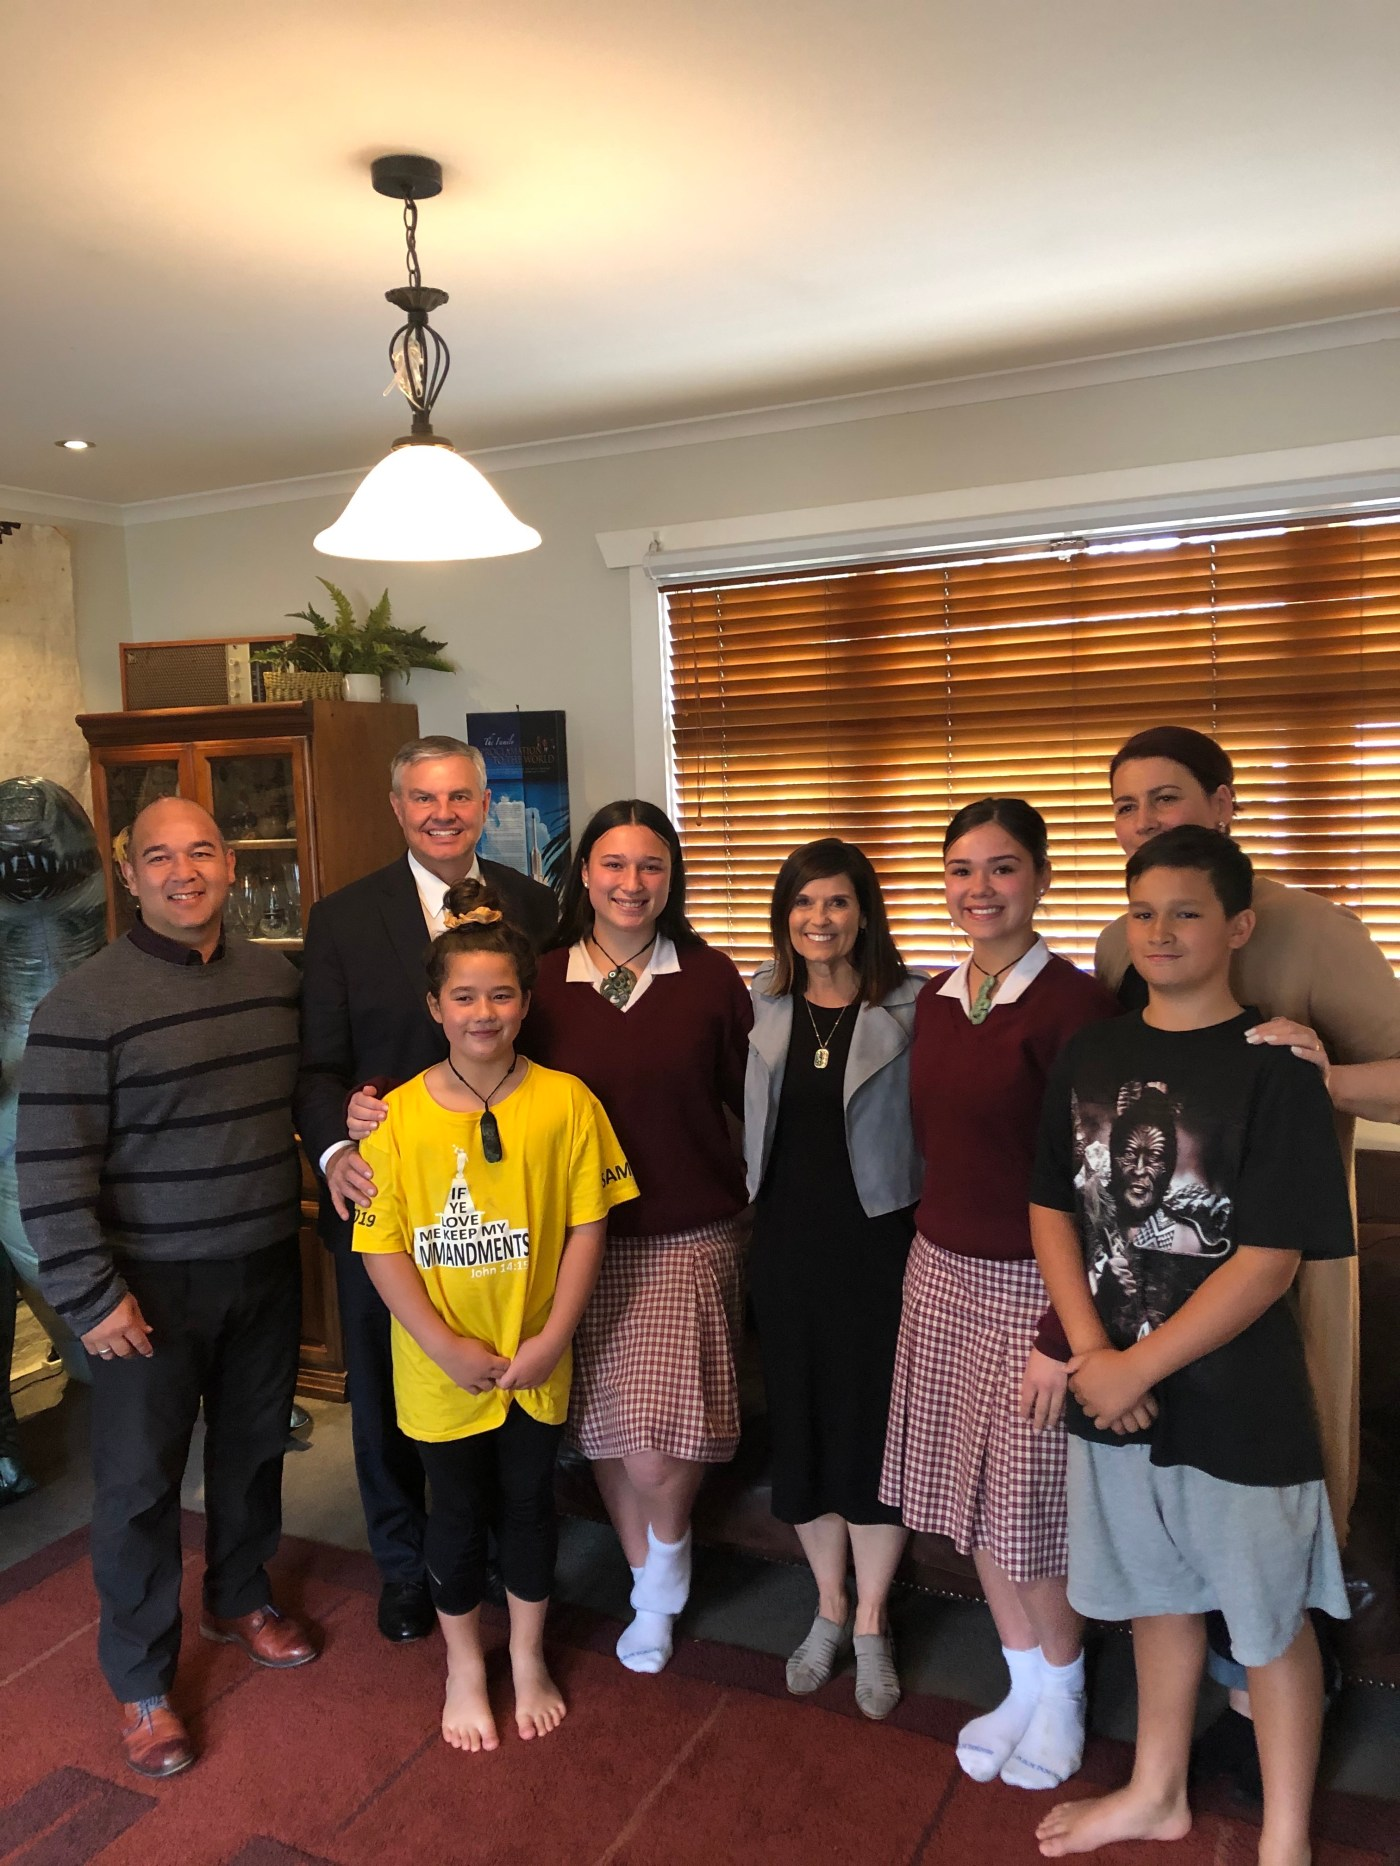 Sister Becky Craven, center, and her husband, Brother Ron Craven, second left, pose with a Latter-day Saint family in Christchurch, New Zealand, during a ministering visit to the family's home during Sister Craven's trip to the Pacific Area in October 2019.